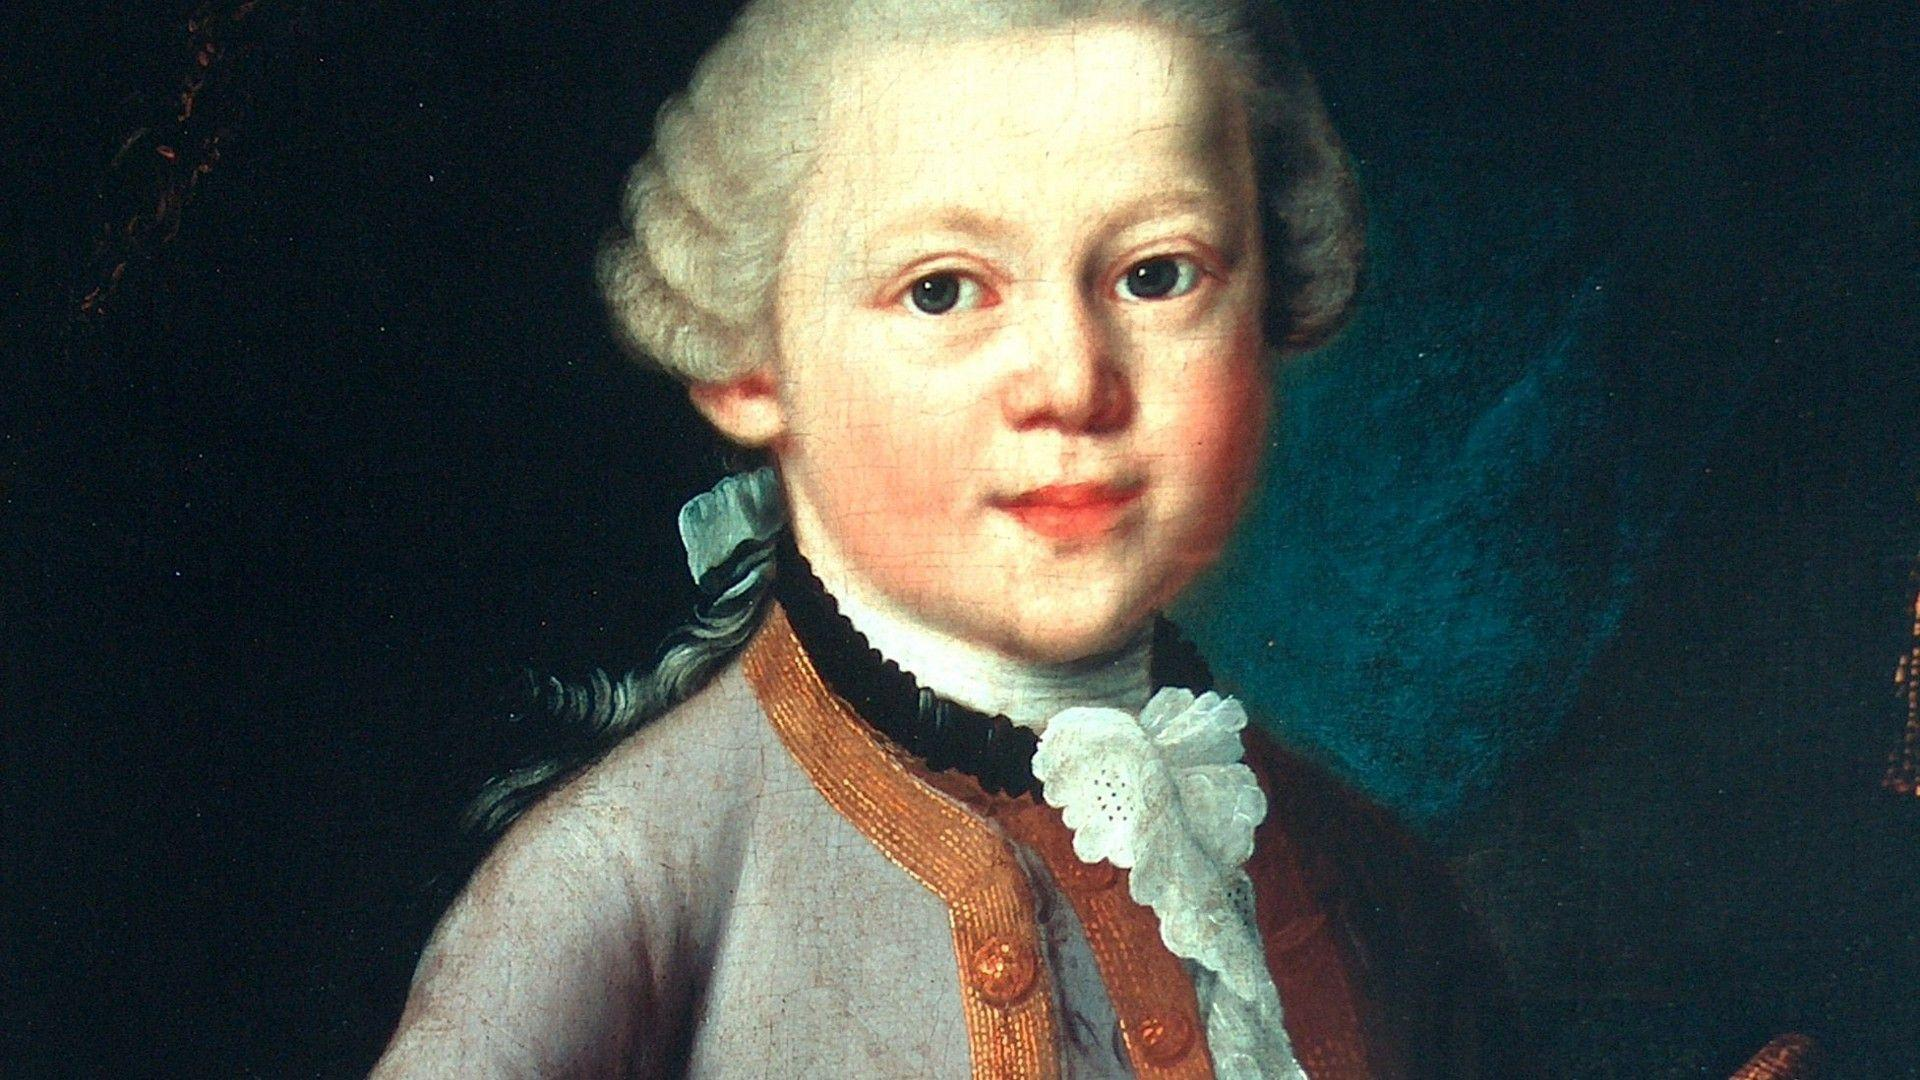 1000+ images about Mozart on Pinterest | Portrait, Rockers and ...